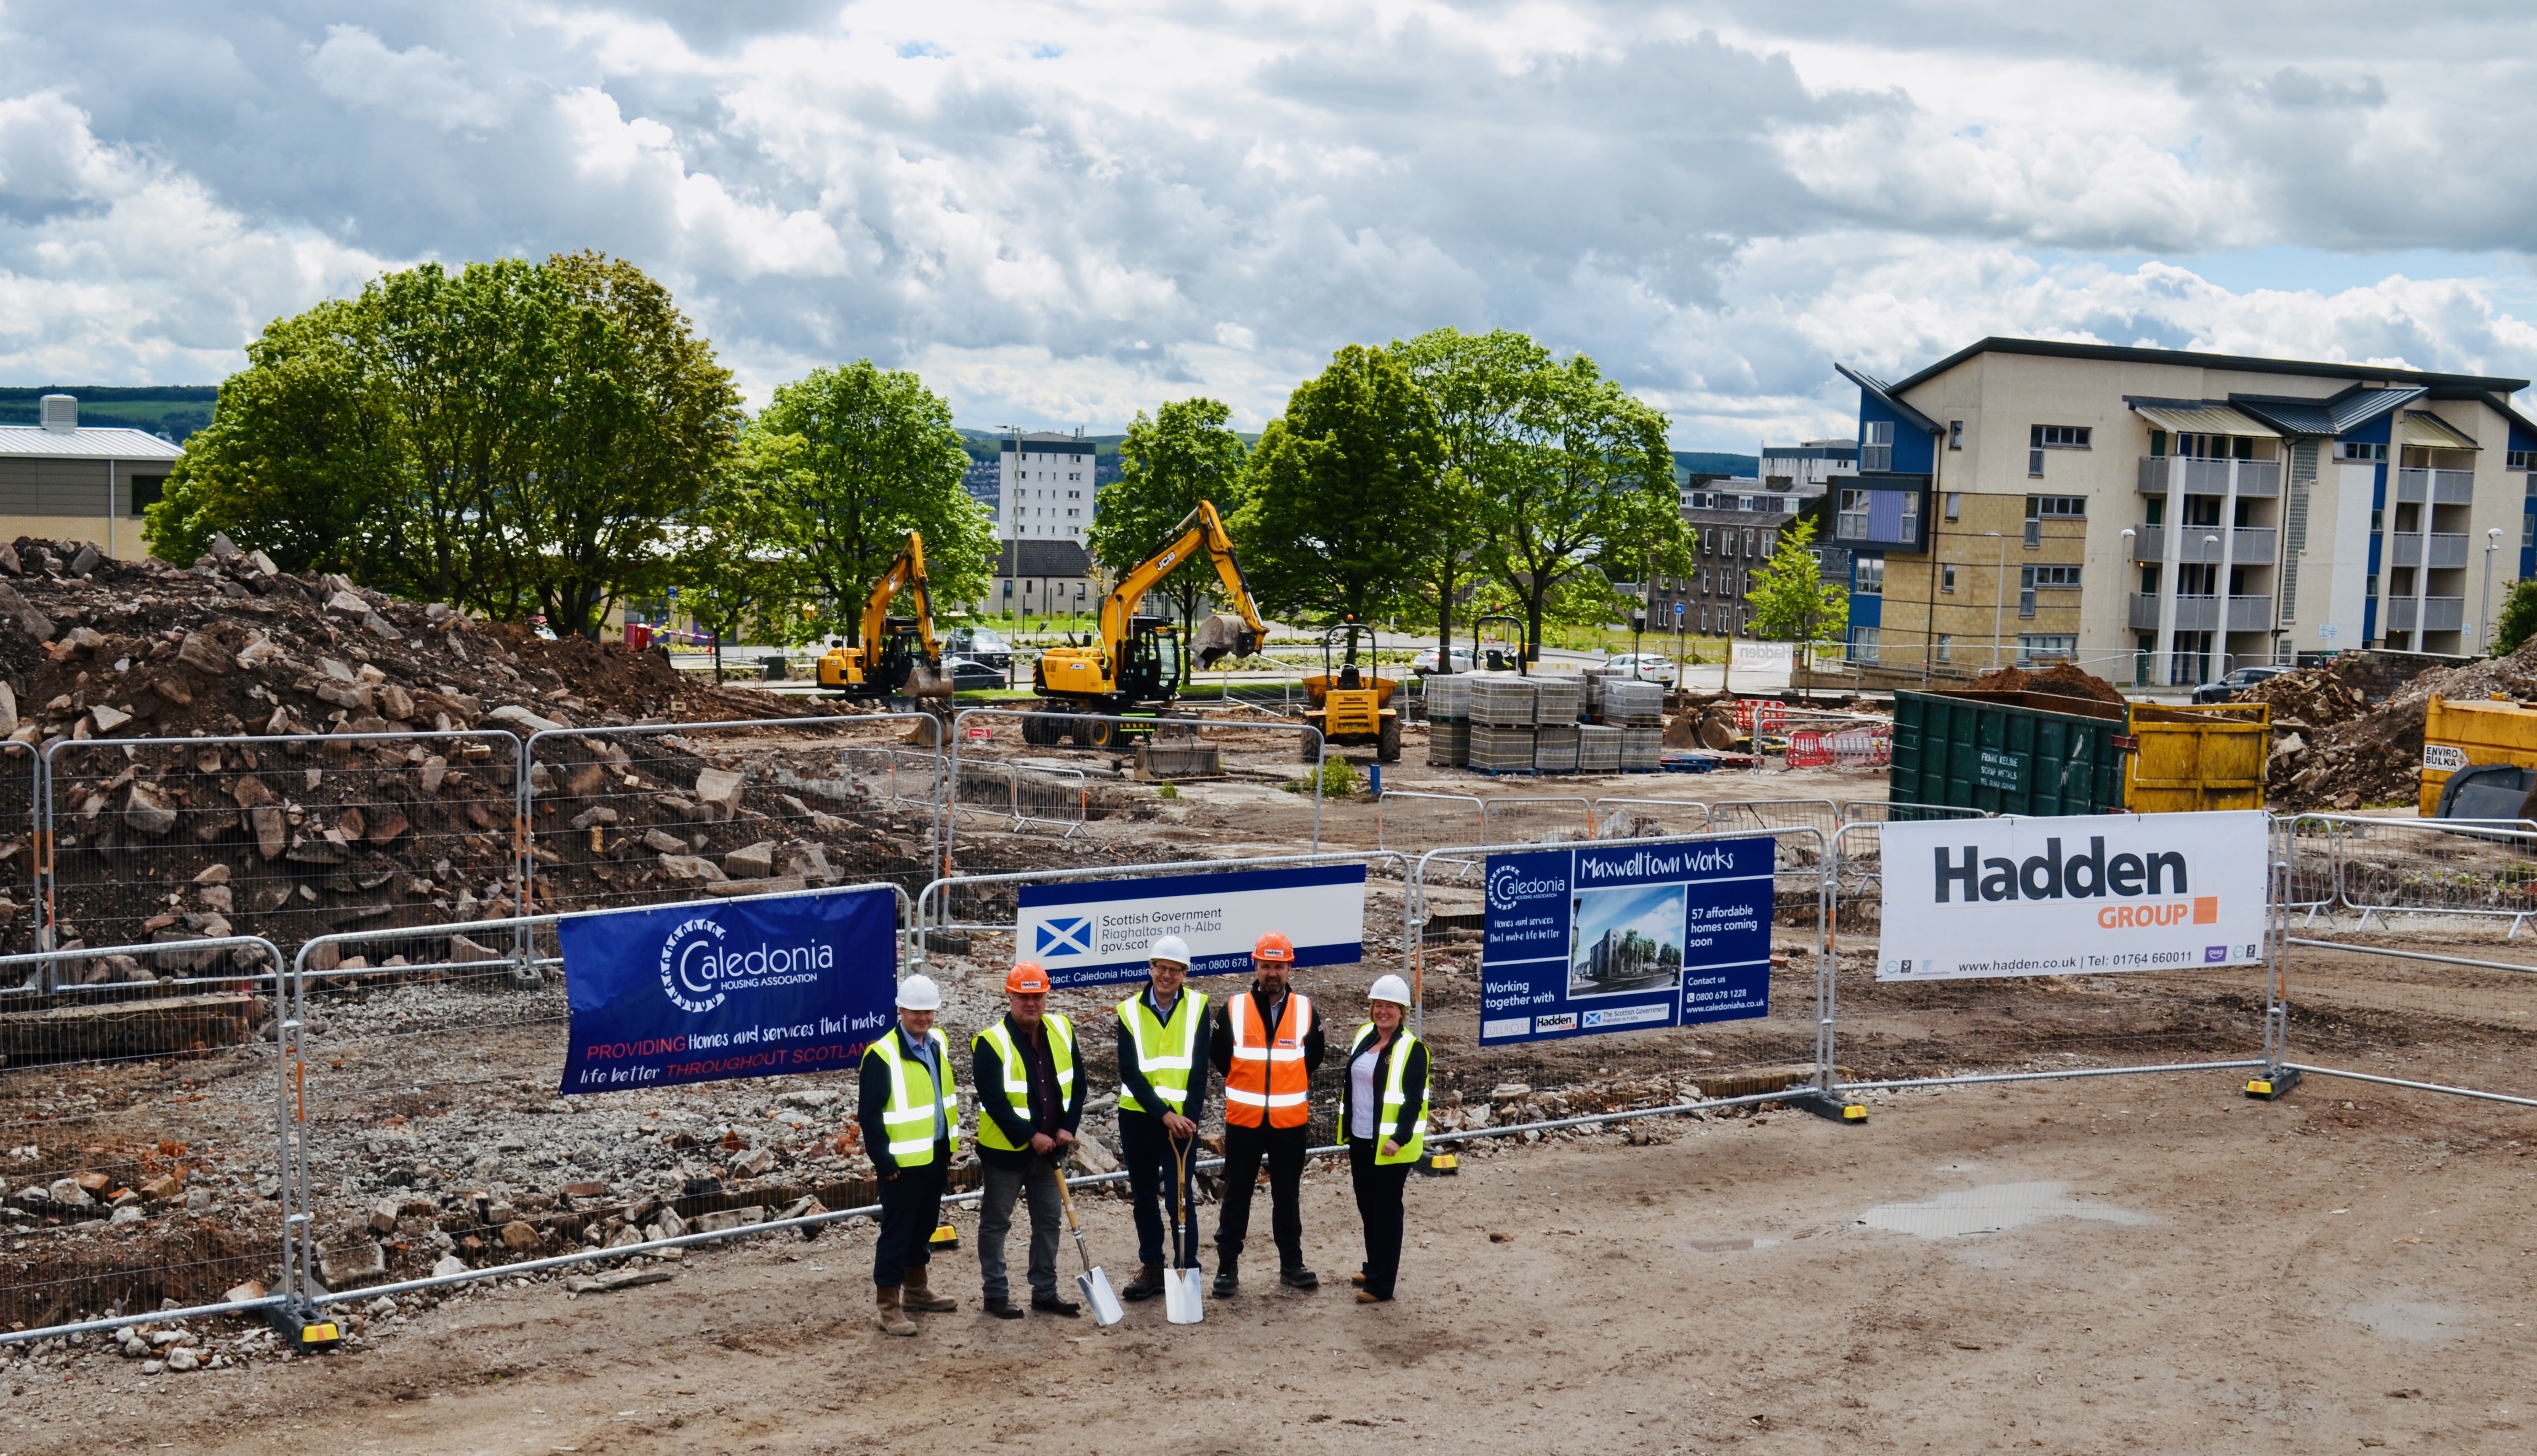 Affordable housing is a growing sector for the firm.